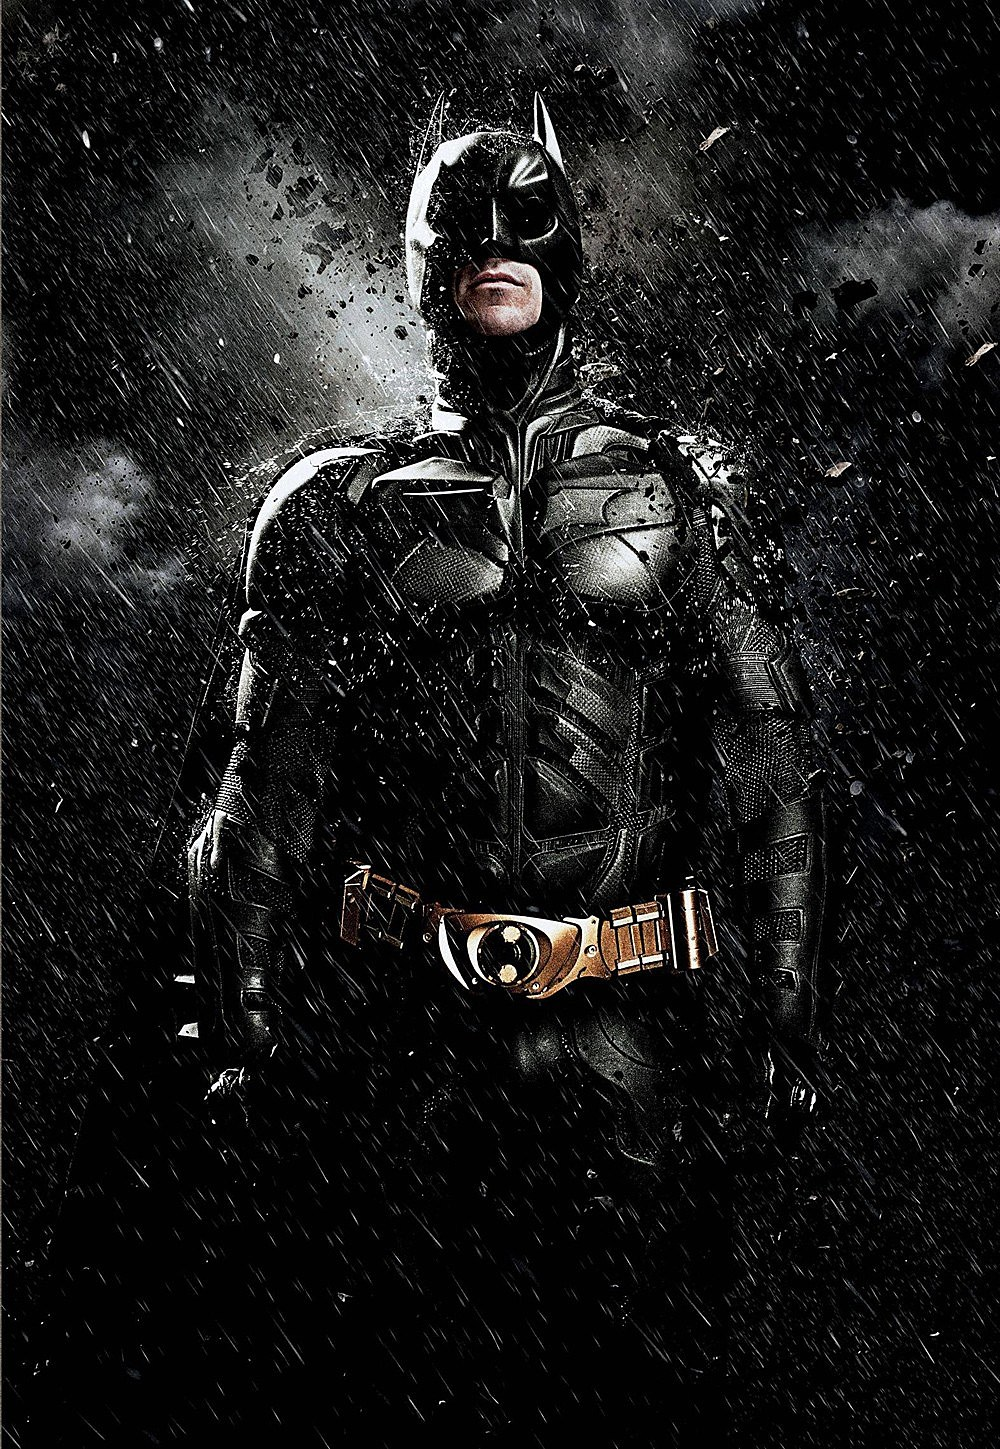 Logic and Symbolism In 'The Dark Knight Rises'